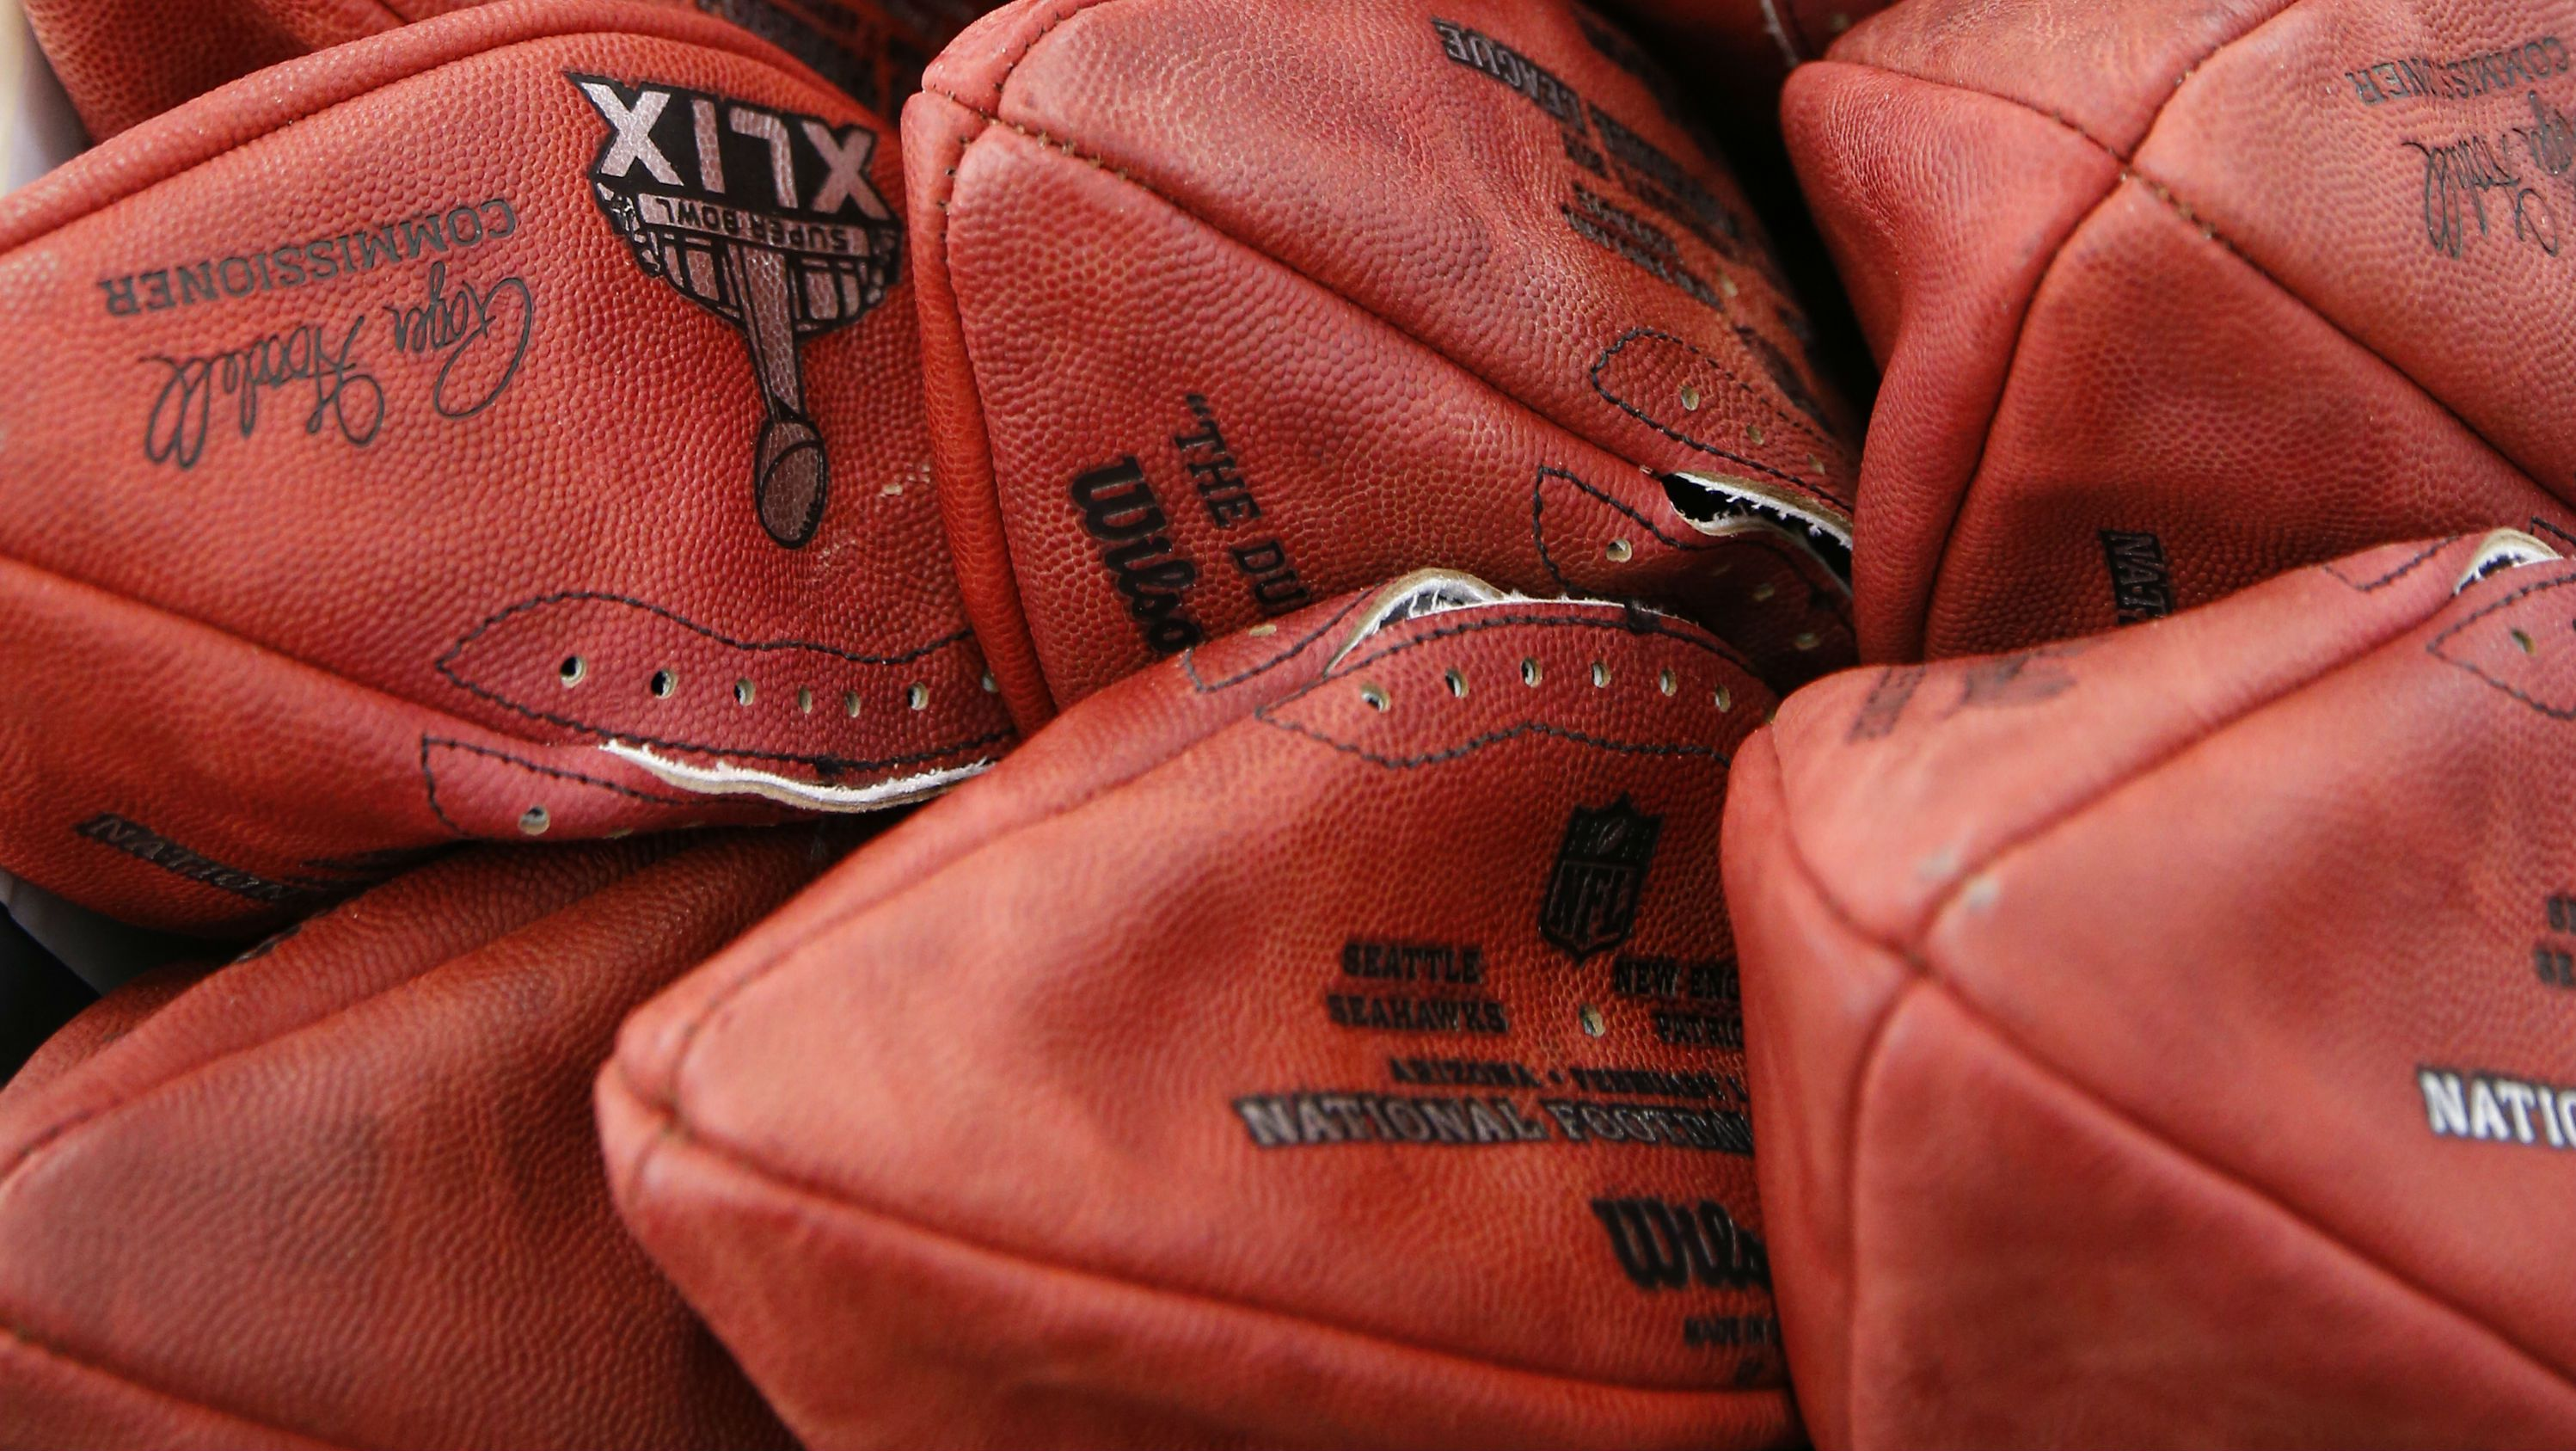 Official game balls for the NFL football Super Bowl XLIX sit in a bin before being laced and inflated at the Wilson Sporting Goods Co. in Ada, Ohio, Tuesday, Jan. 20, 2015. The New England Patriots will play the Seattle Seahawks in the Super Bowl on Feb. 1 in Glendale, Arizona. (AP Photo/Rick Osentoski)